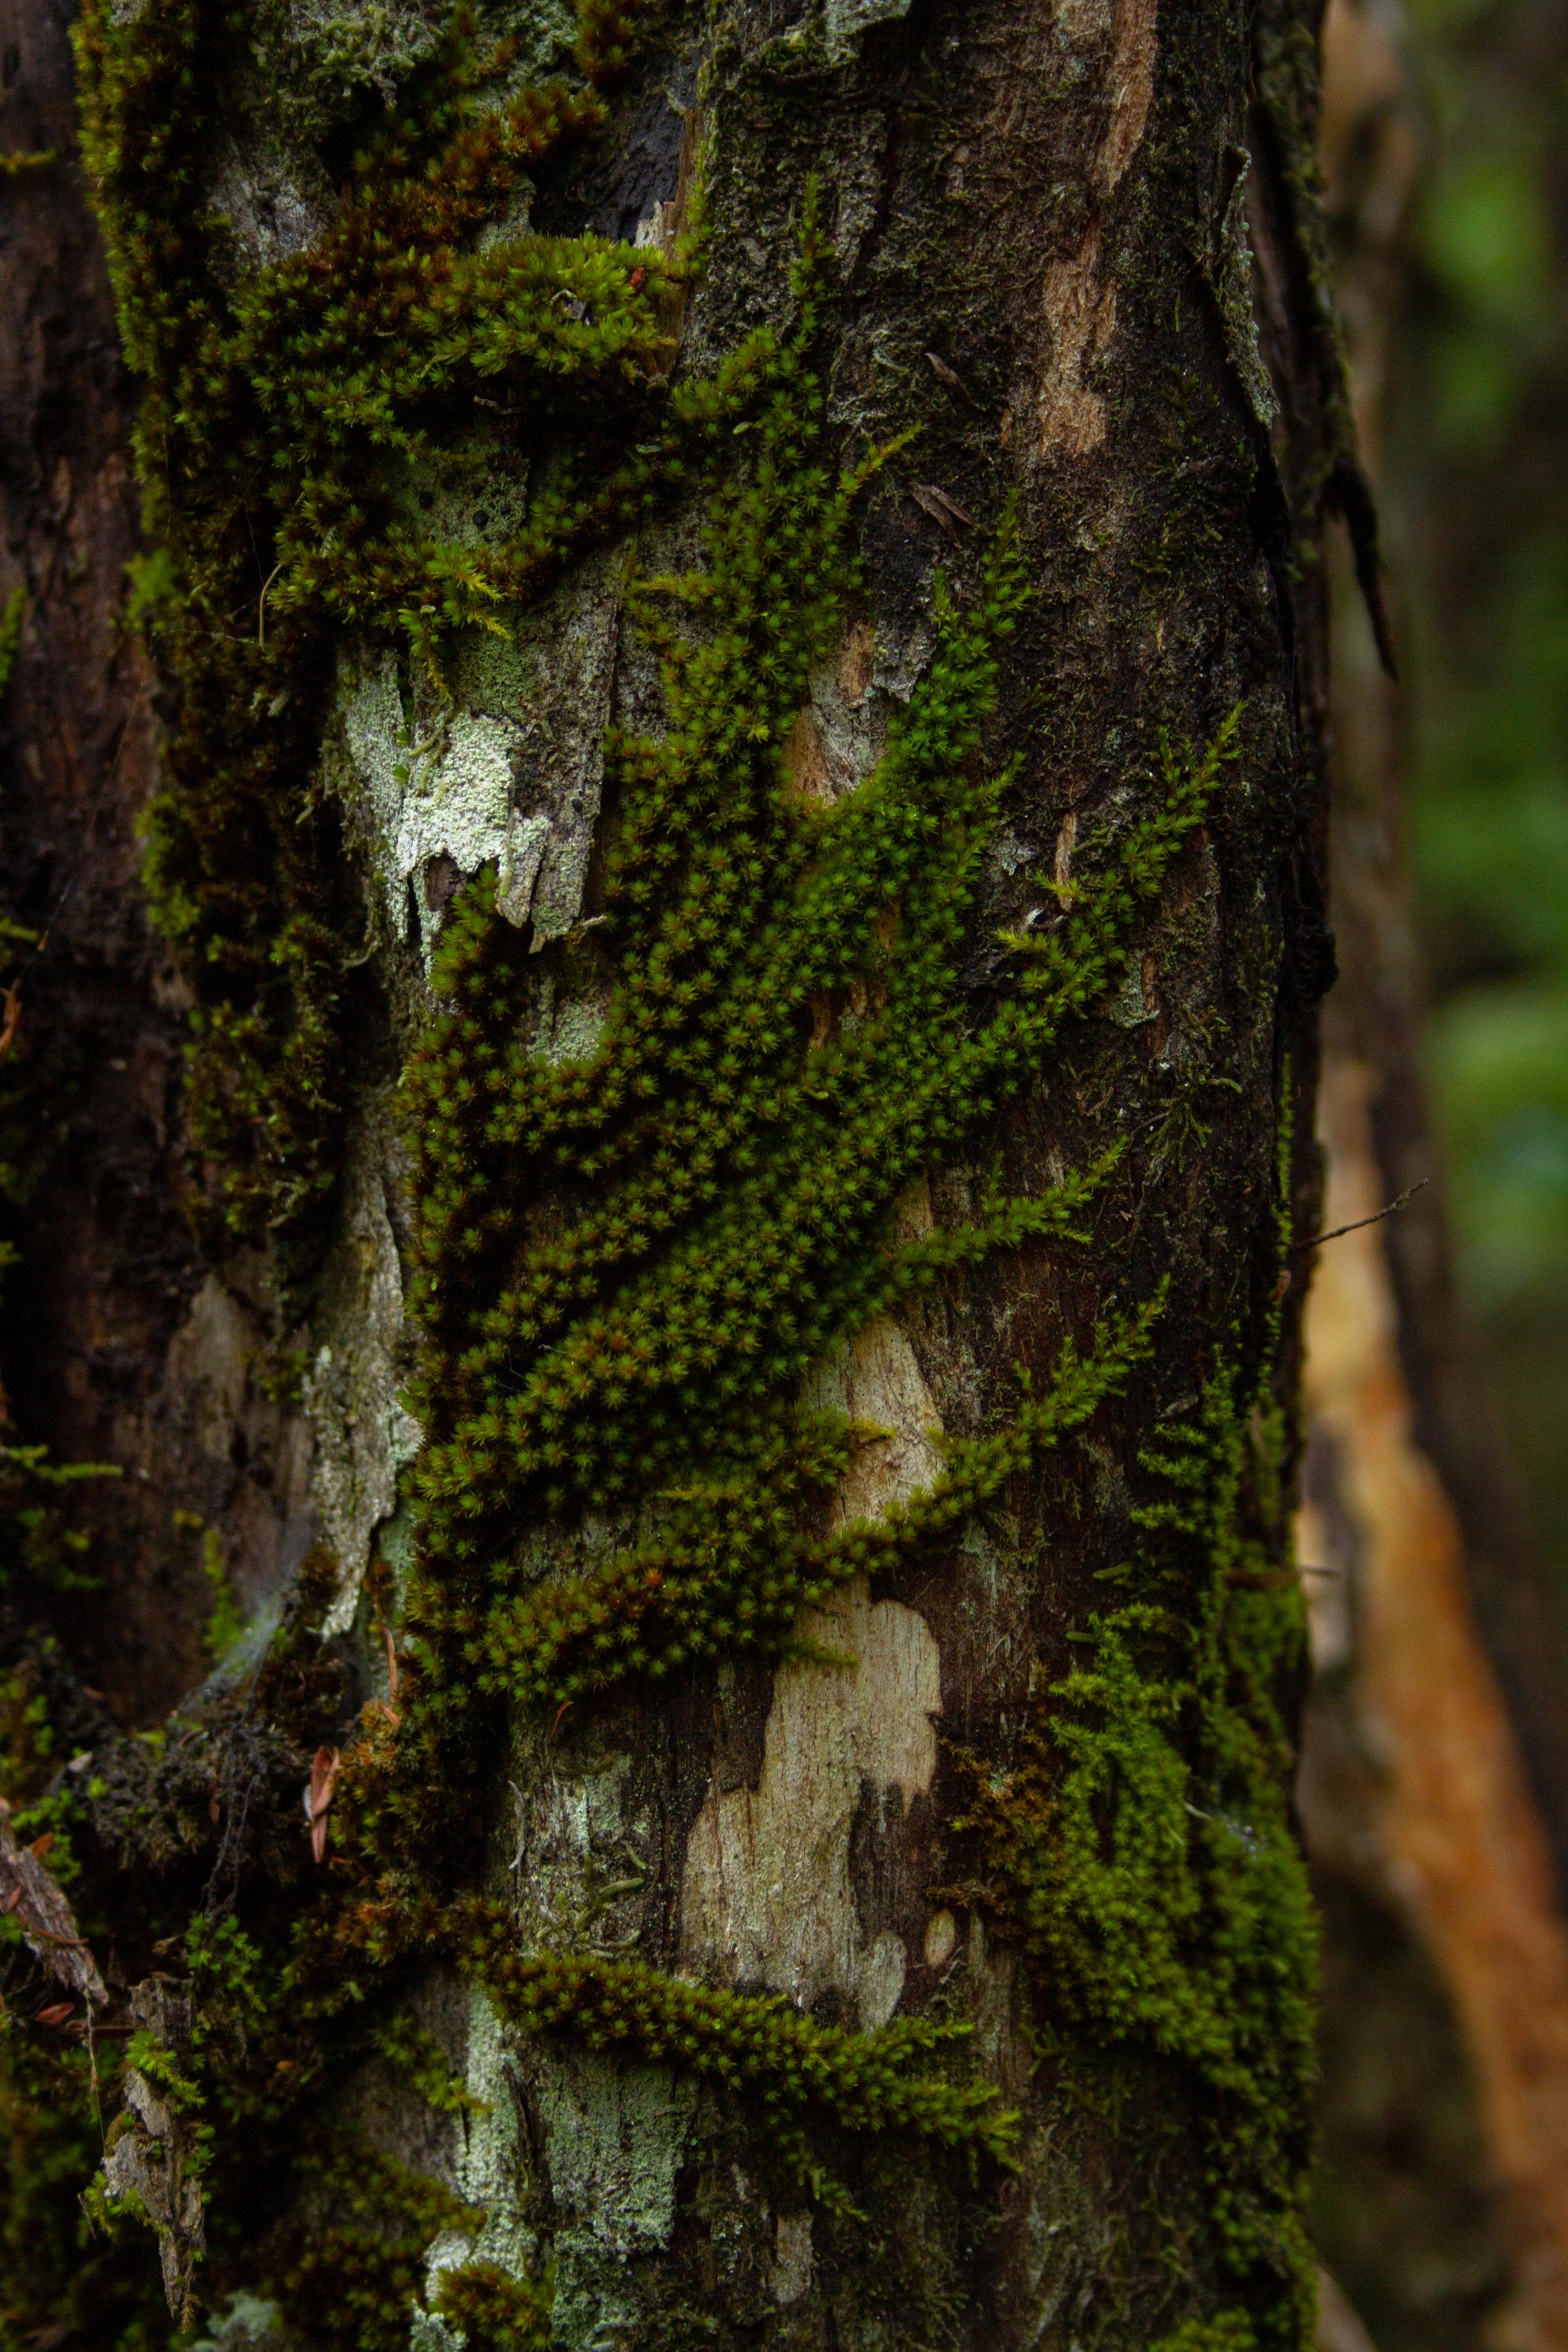 Moss, Windy Canyon, Aotea, March 2019